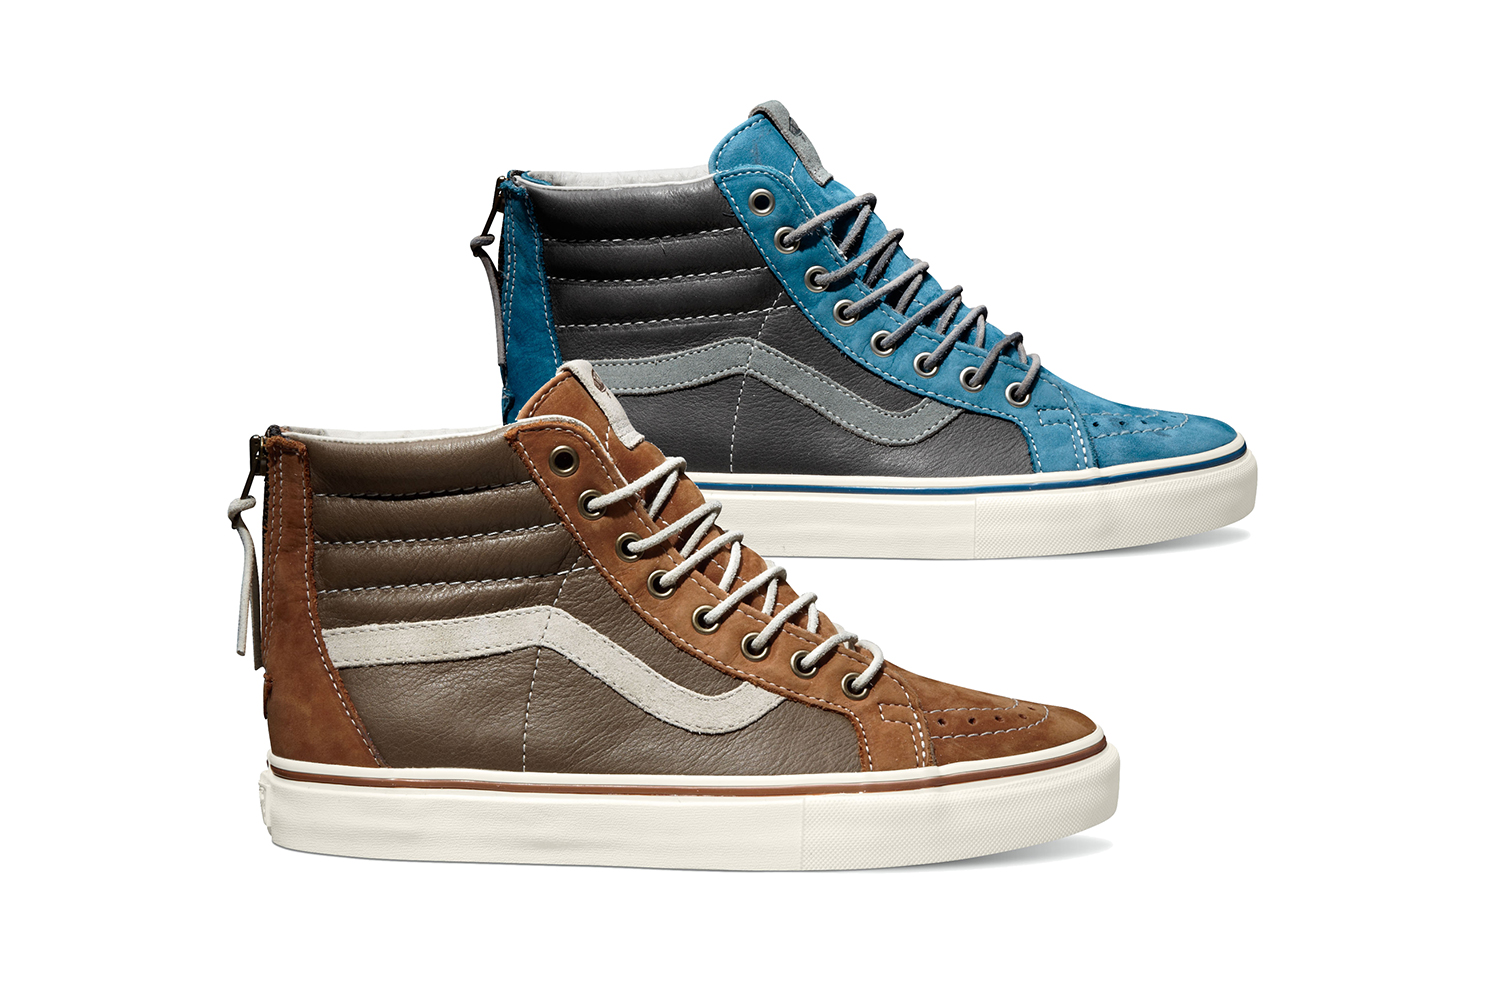 e817dd05fbdf11 The Sk8-Hi Reissue Zip LX Spring 2014 collection is available now from Vans  Vault stockists.